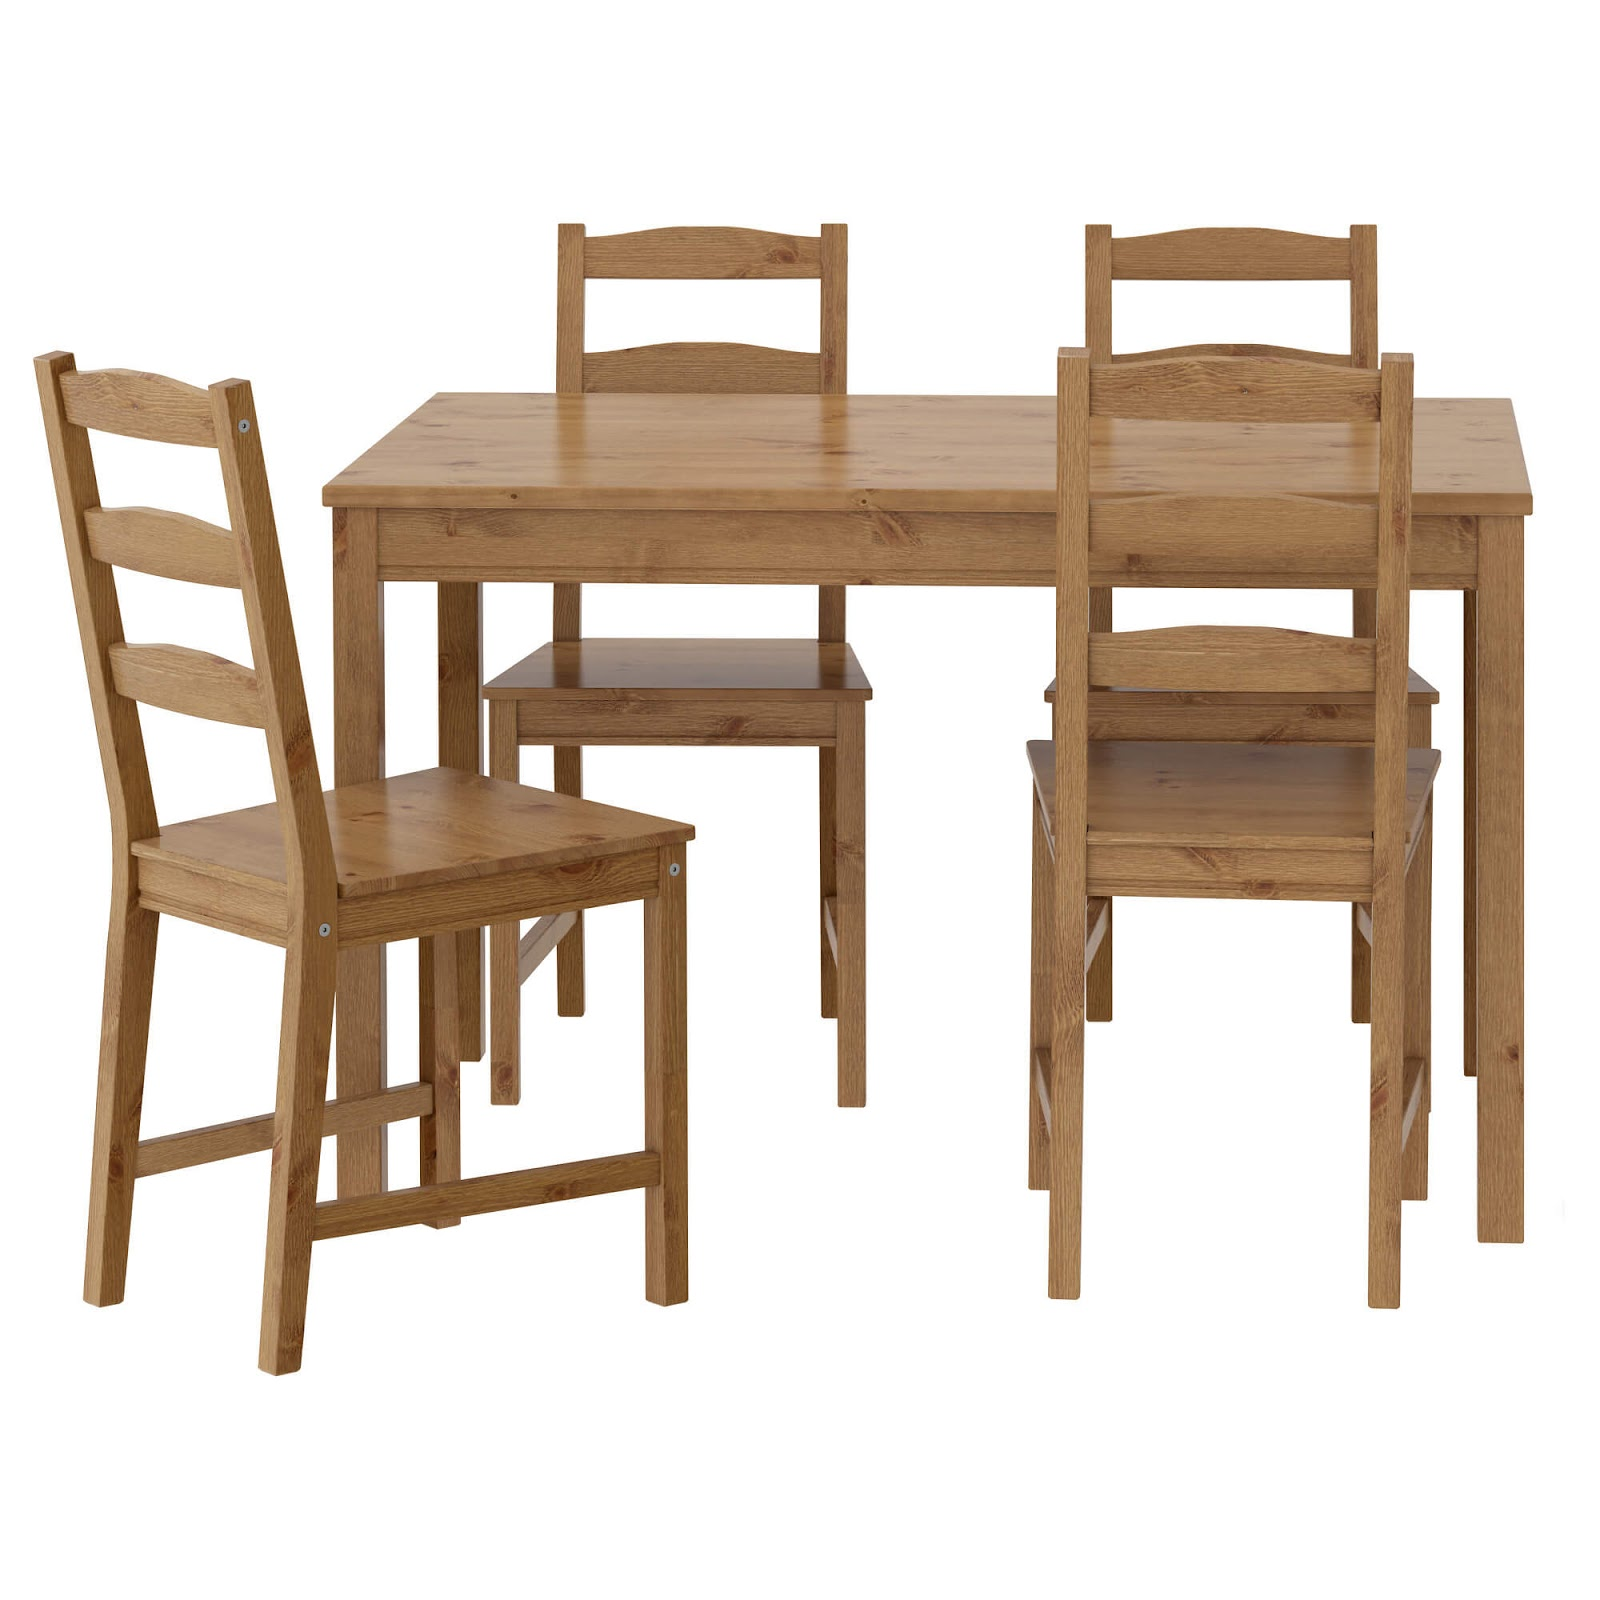 Unfinished Dining Chair Chairs Oslo 8 43 Ideas